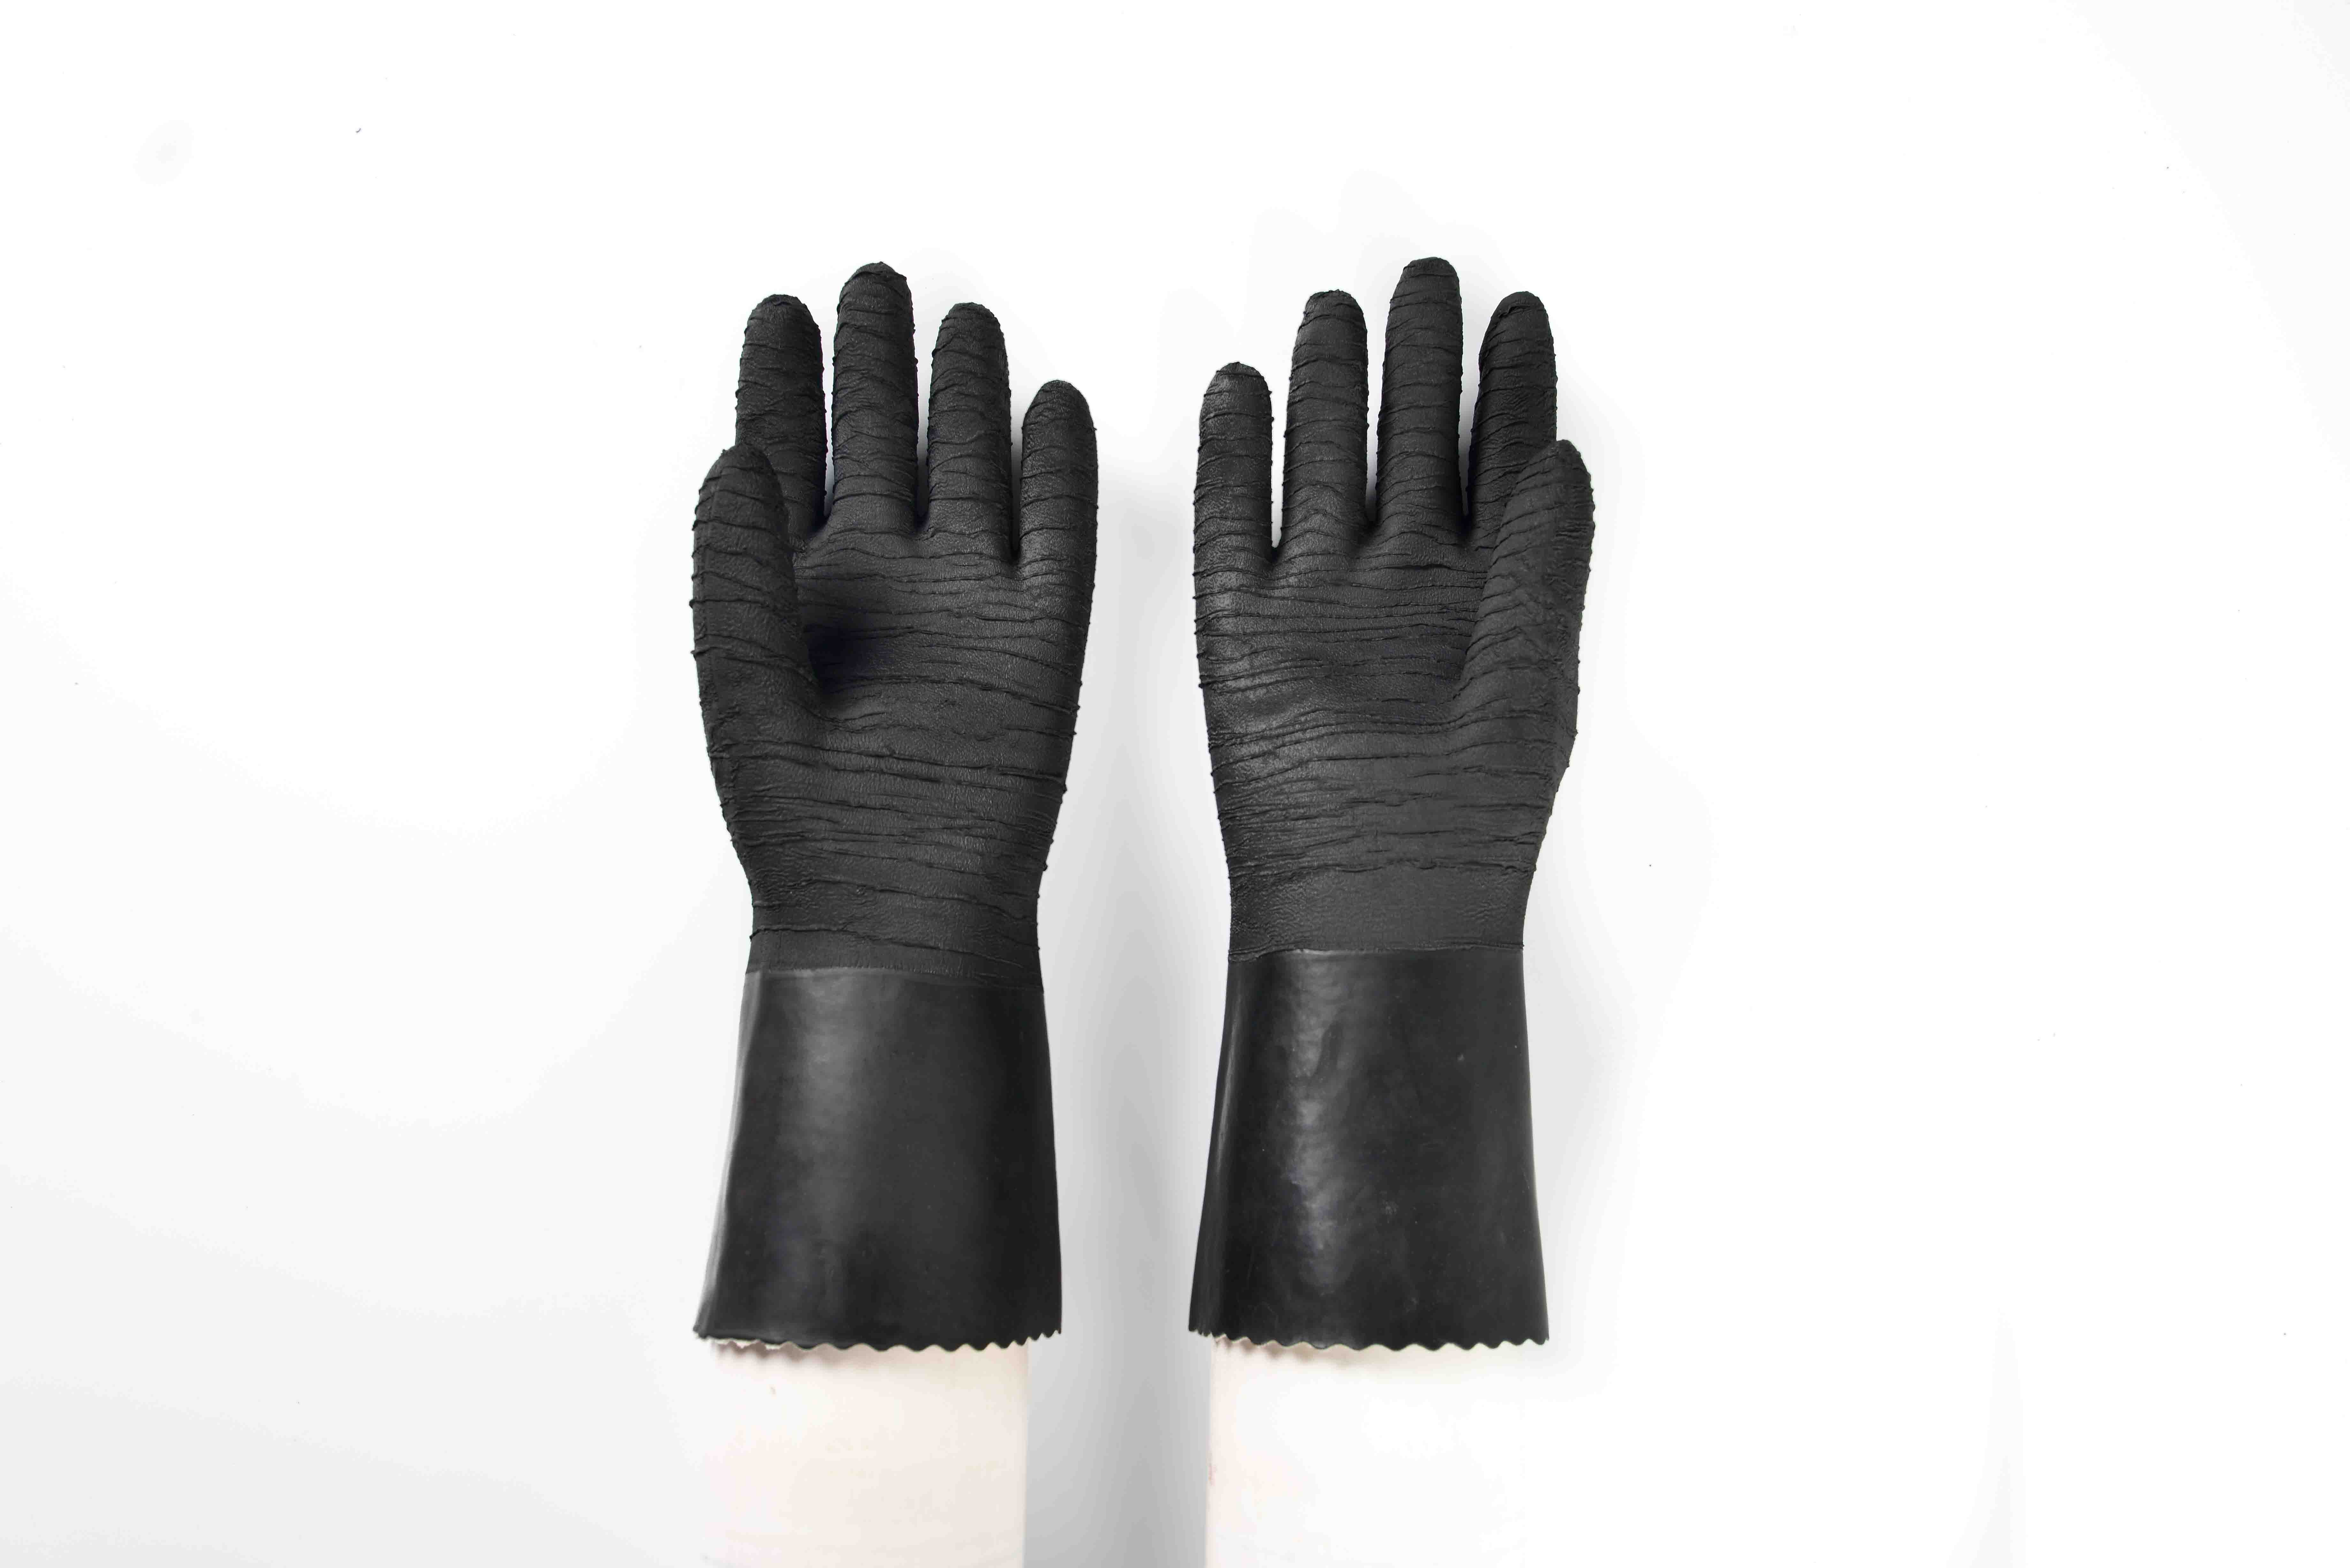 High definition wholesale 12″ rubber glove with cotton linning-rough finish for Kyrgyzstan